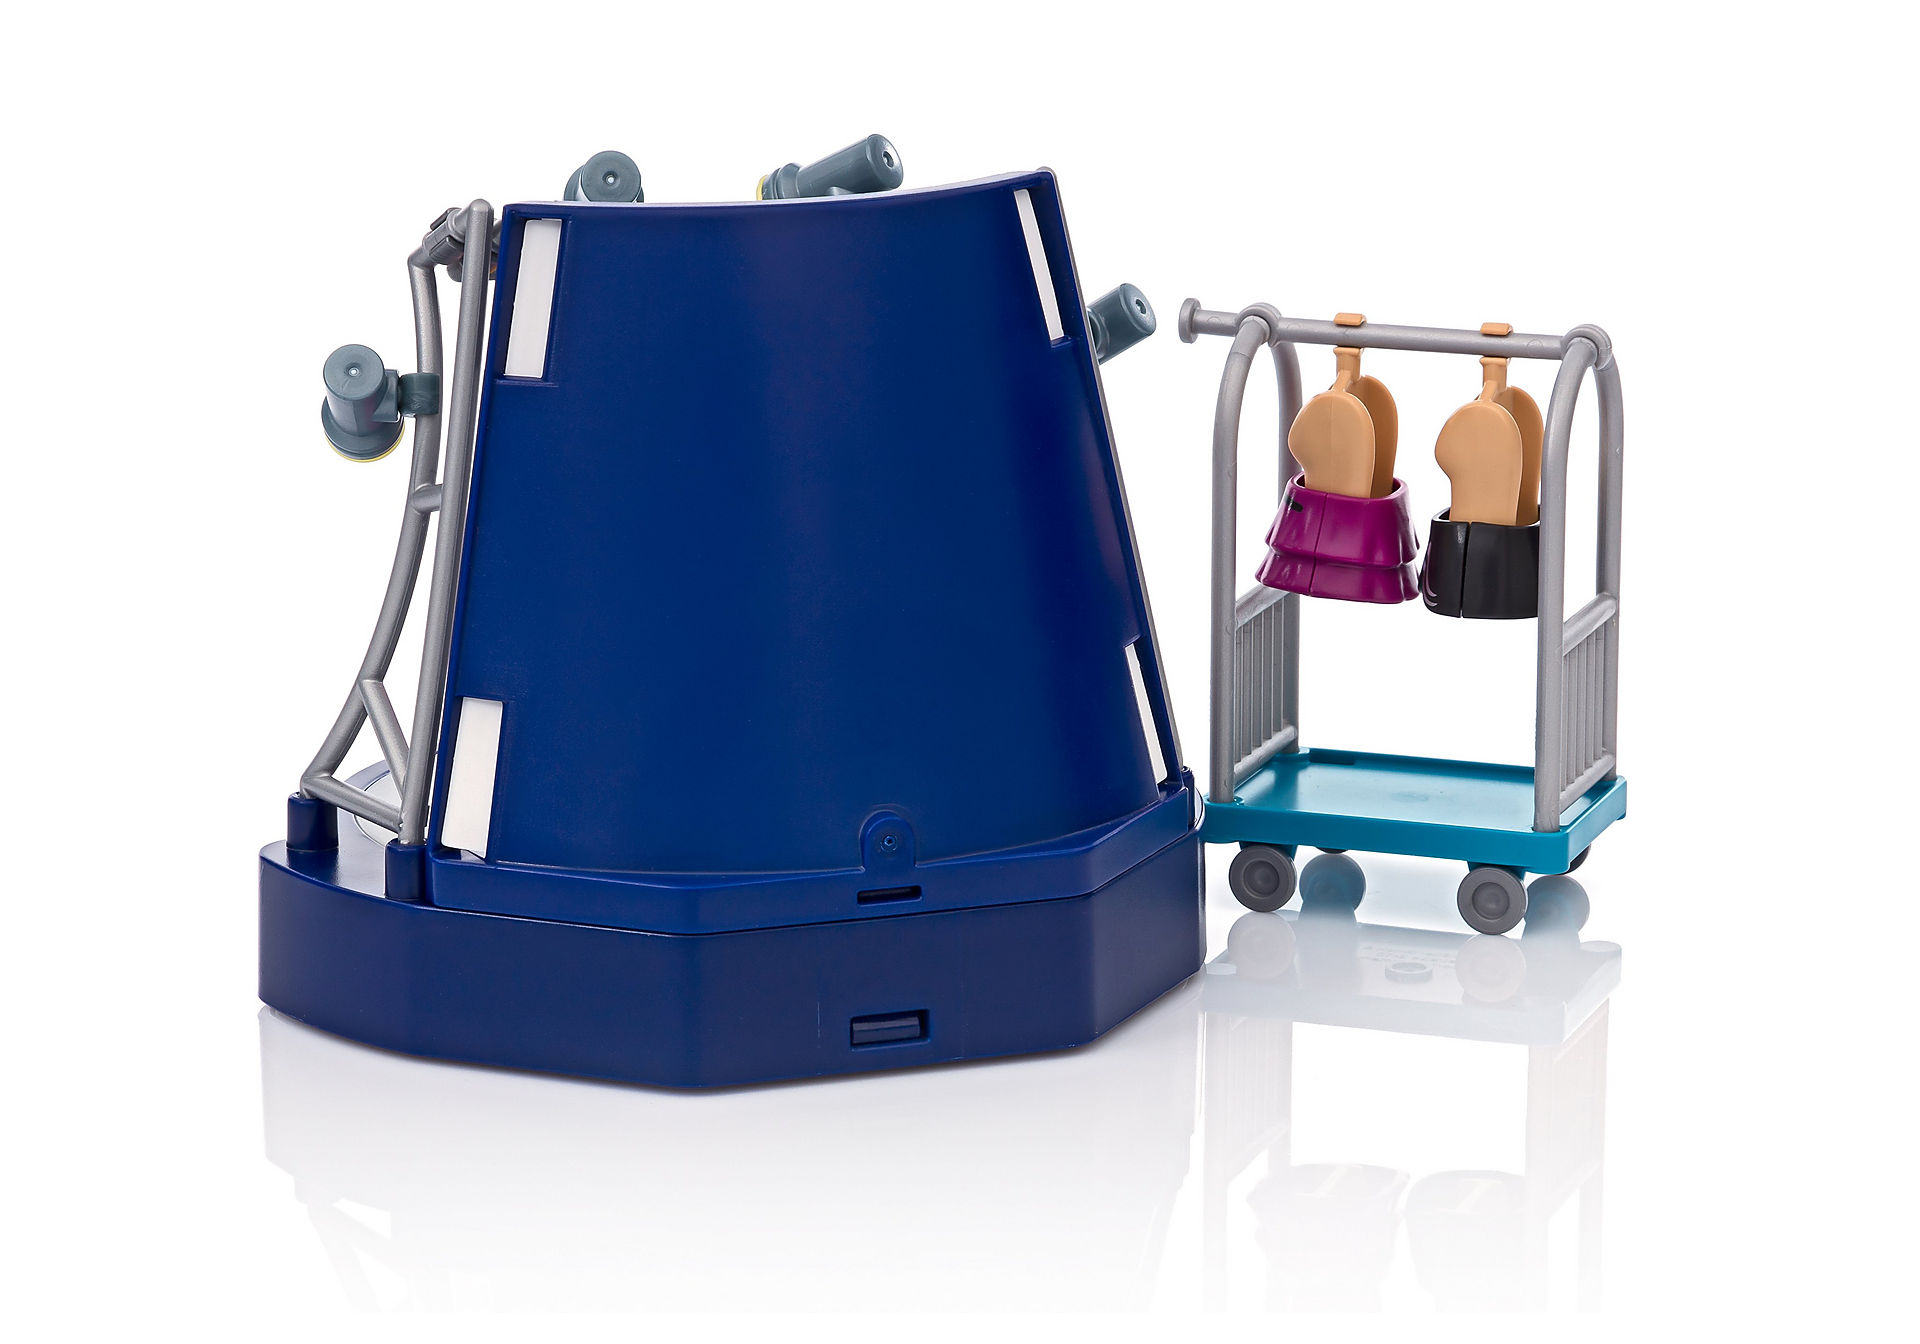 360degree image 19